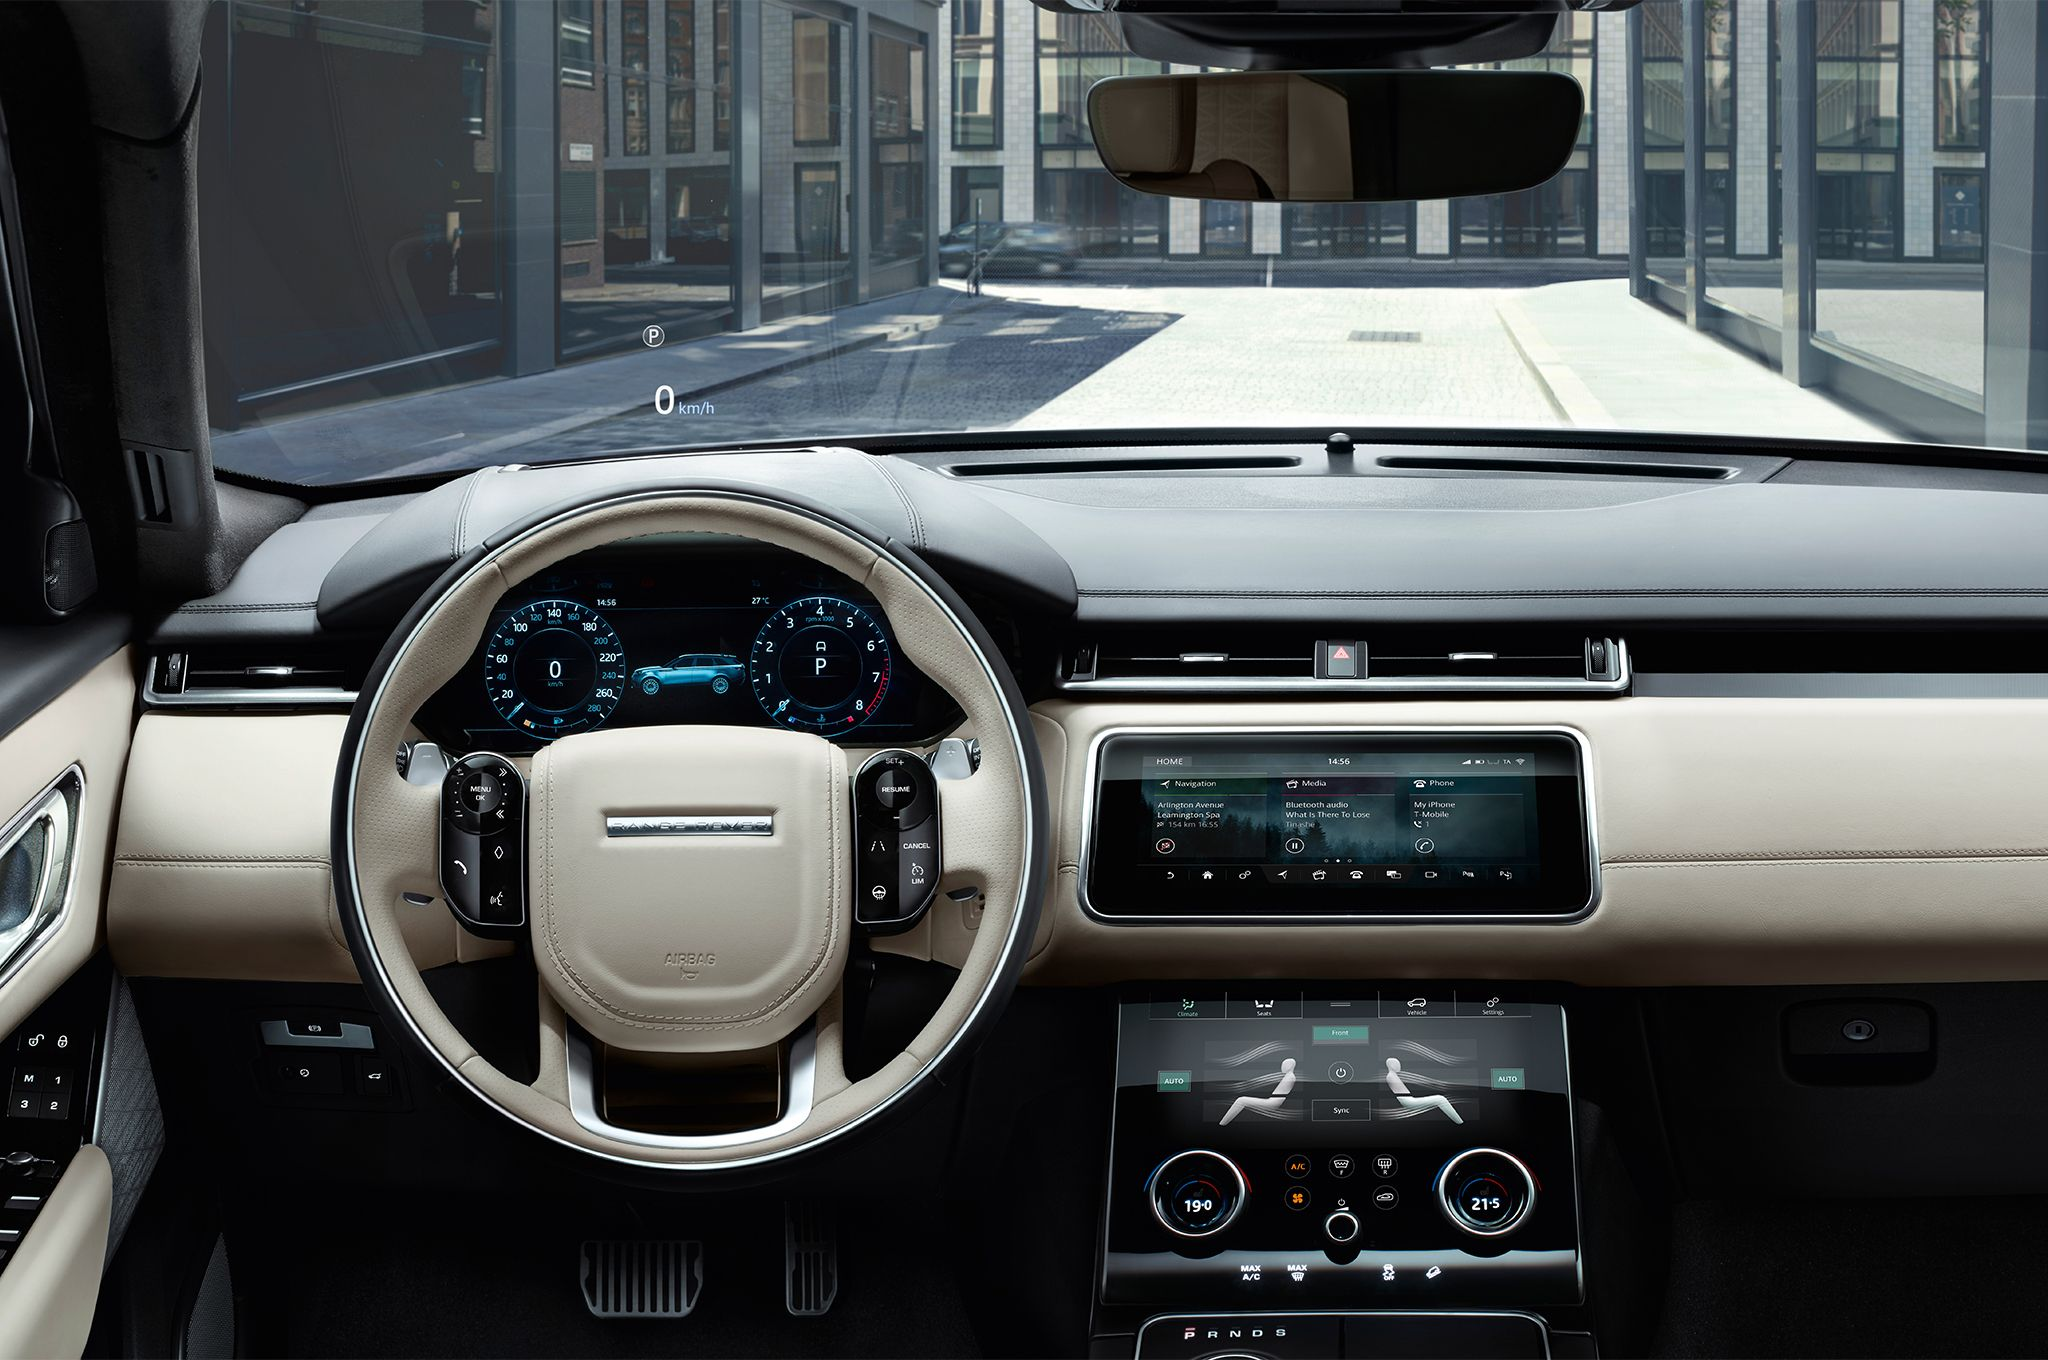 2017 range rover velar l560 range rover velar pinterest range rovers land rovers and cars